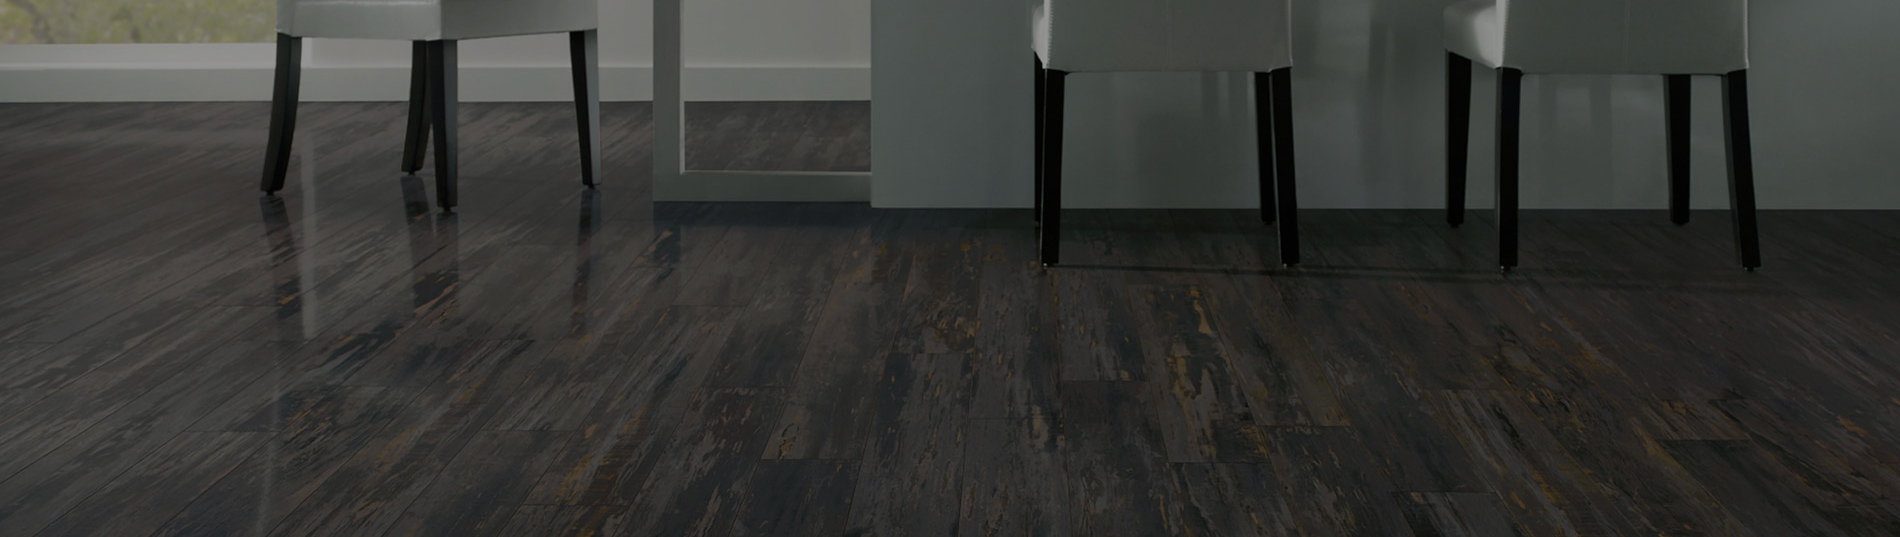 Hardwood Flooring in Orange County